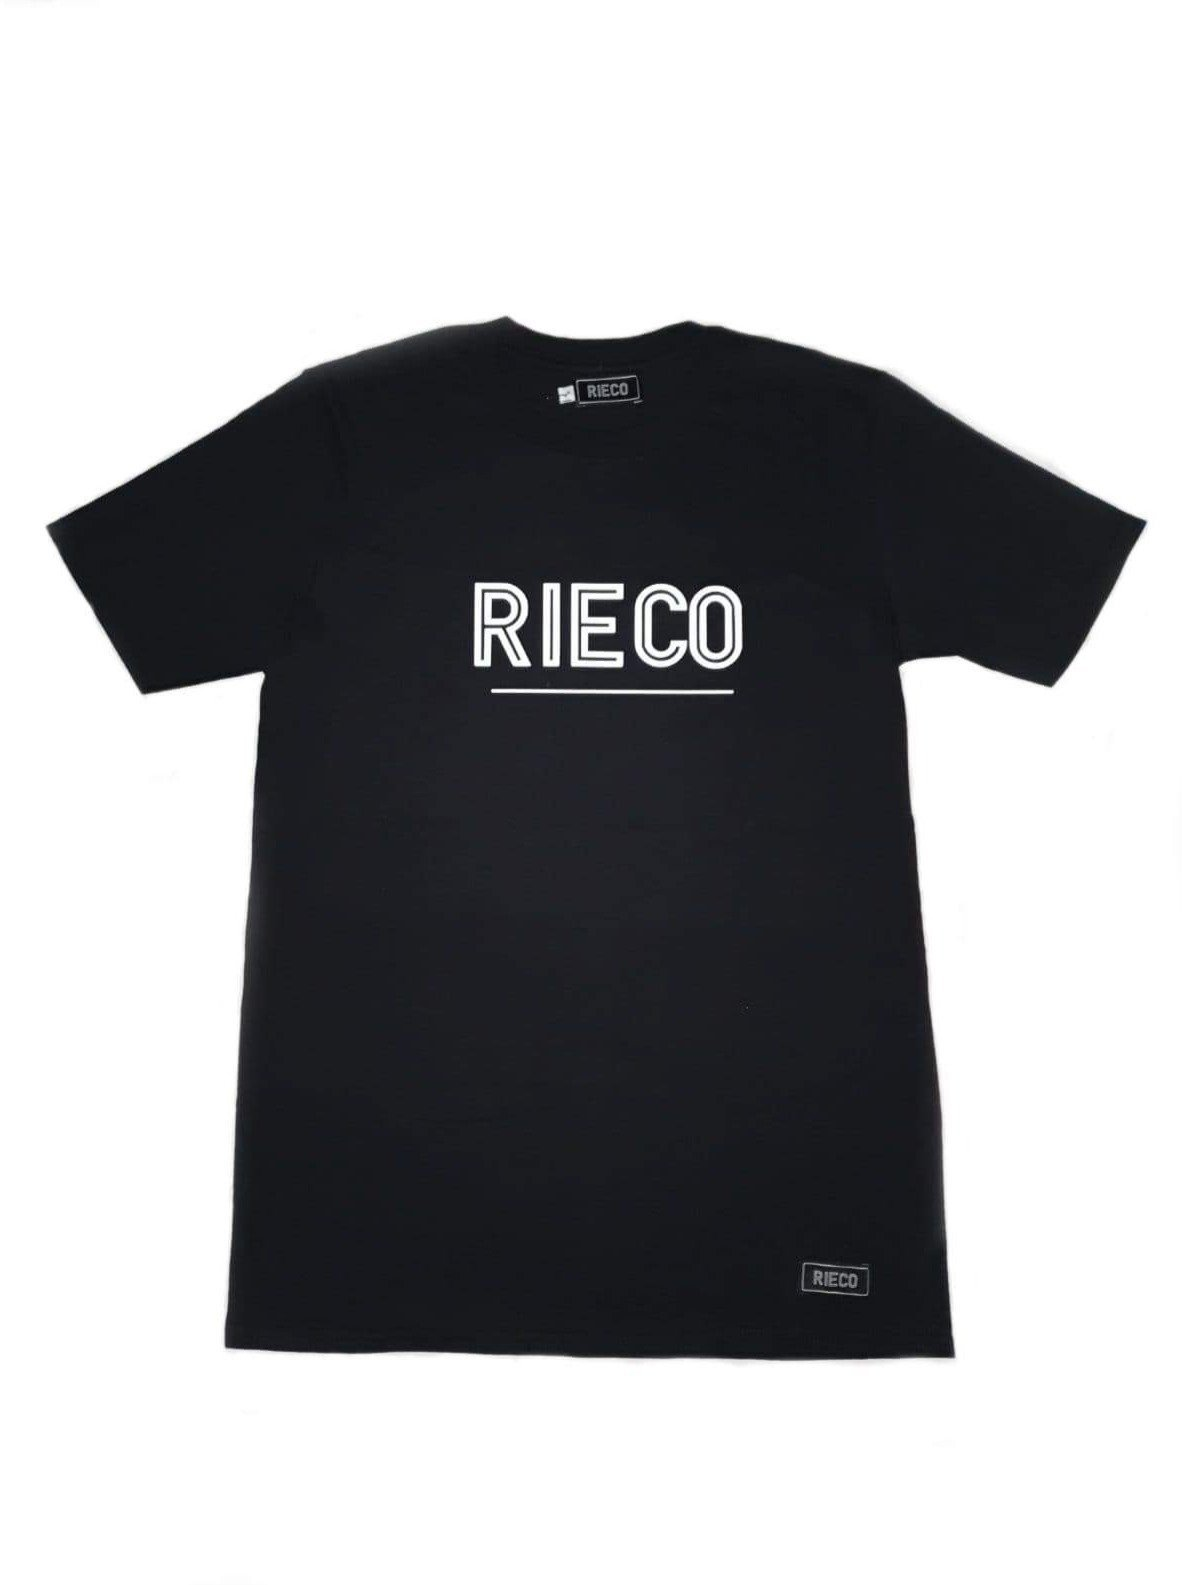 Rieco NS T-Shirt Black/White - Rieco Clothing